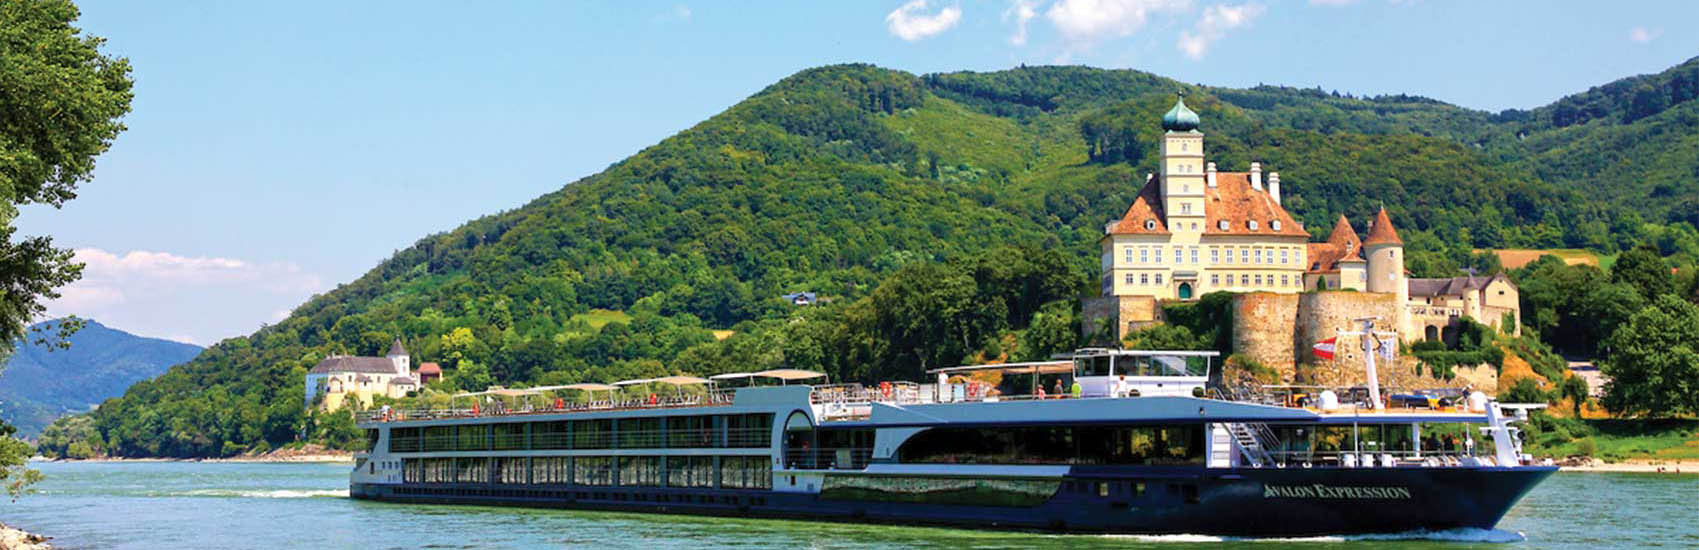 Économisez avec Avalon Waterways